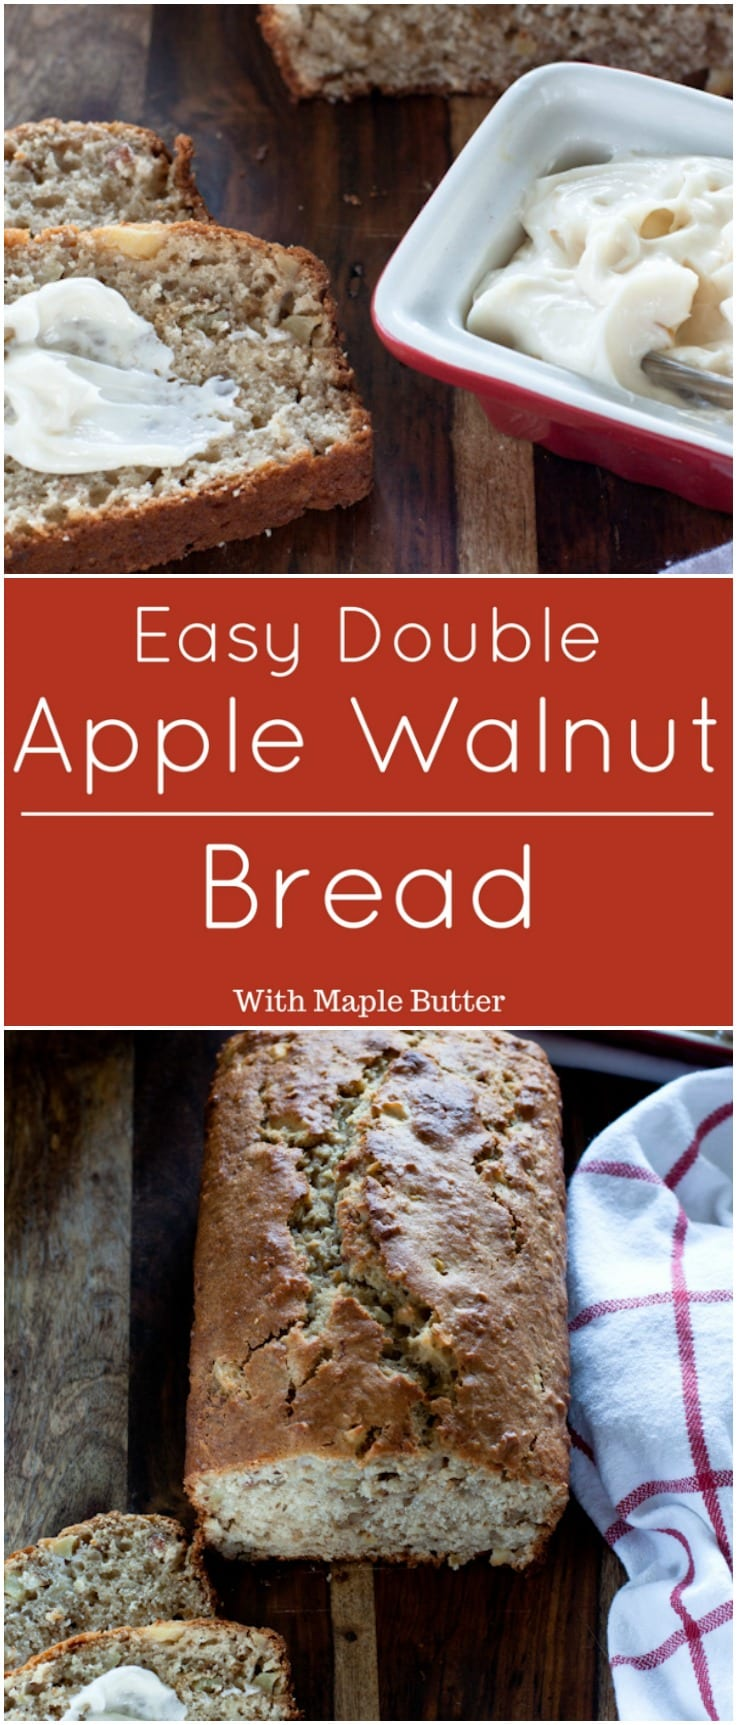 Double Apple Walnut Bread with Maple Butter.